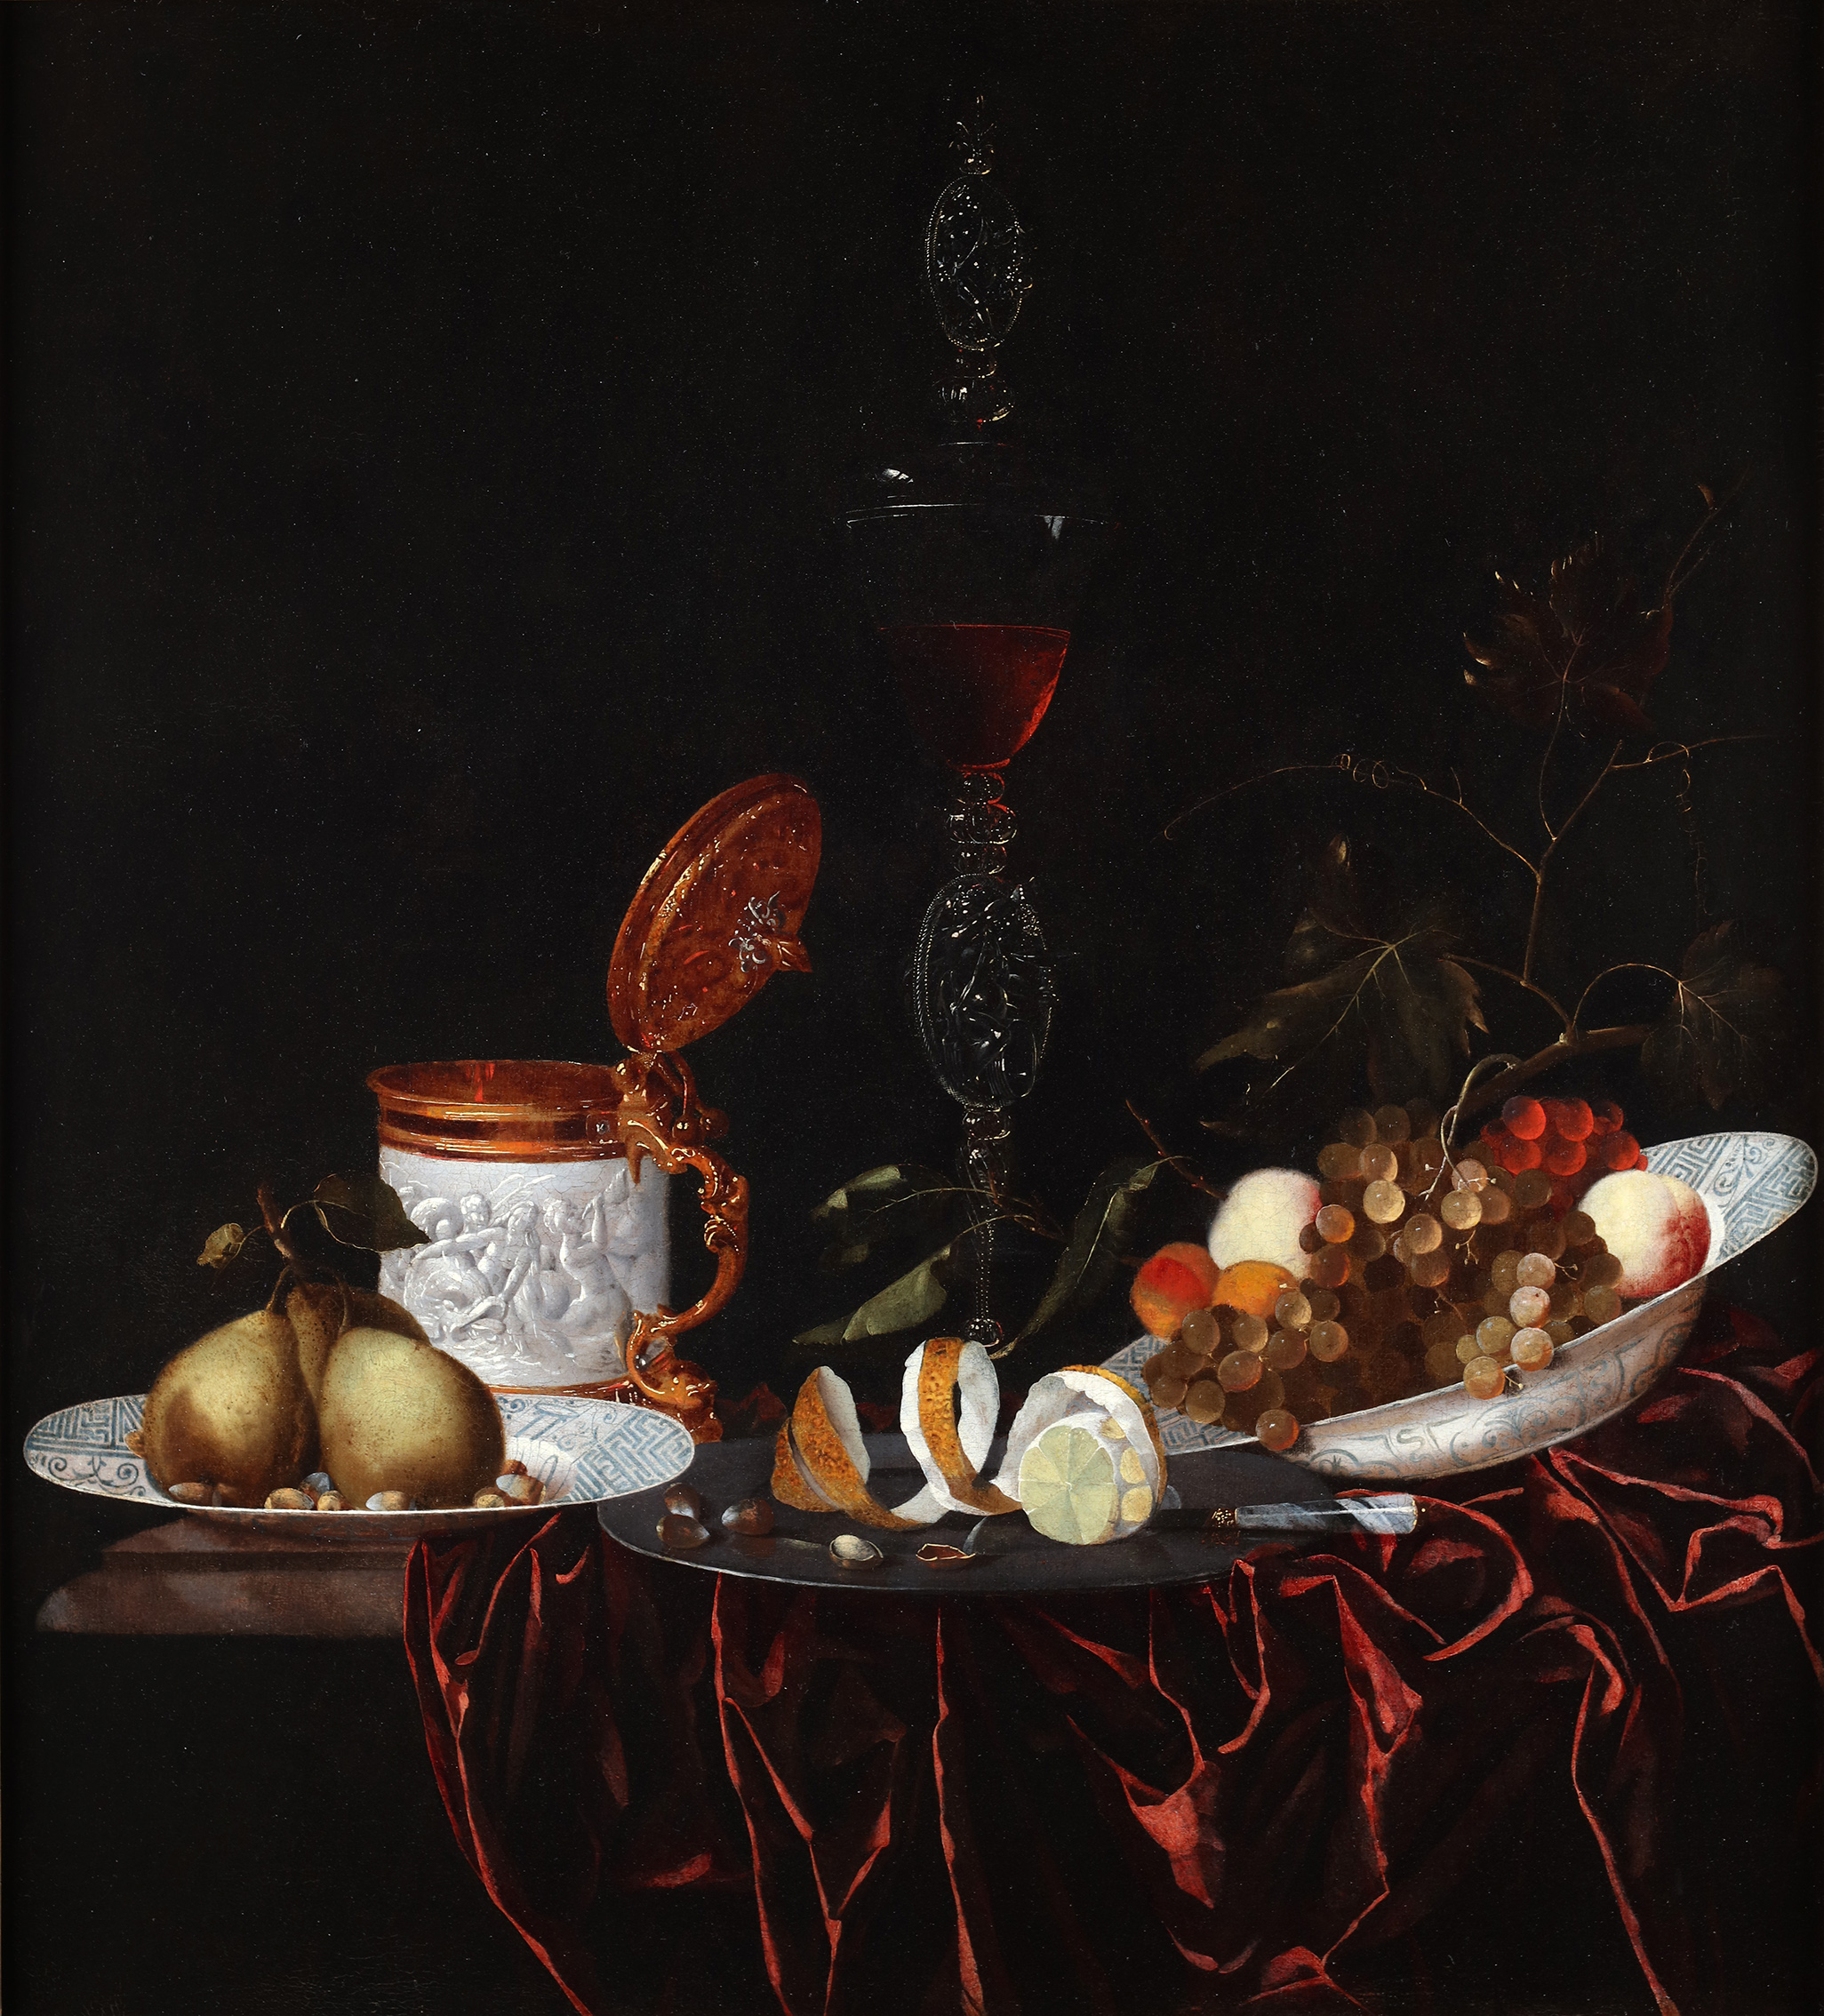 Still life with two Wanli dishes with grapes, pears and other fruits, a peeled lemon and nutshells on a tin plate and a crystal wine glass with the representation of Bacchus